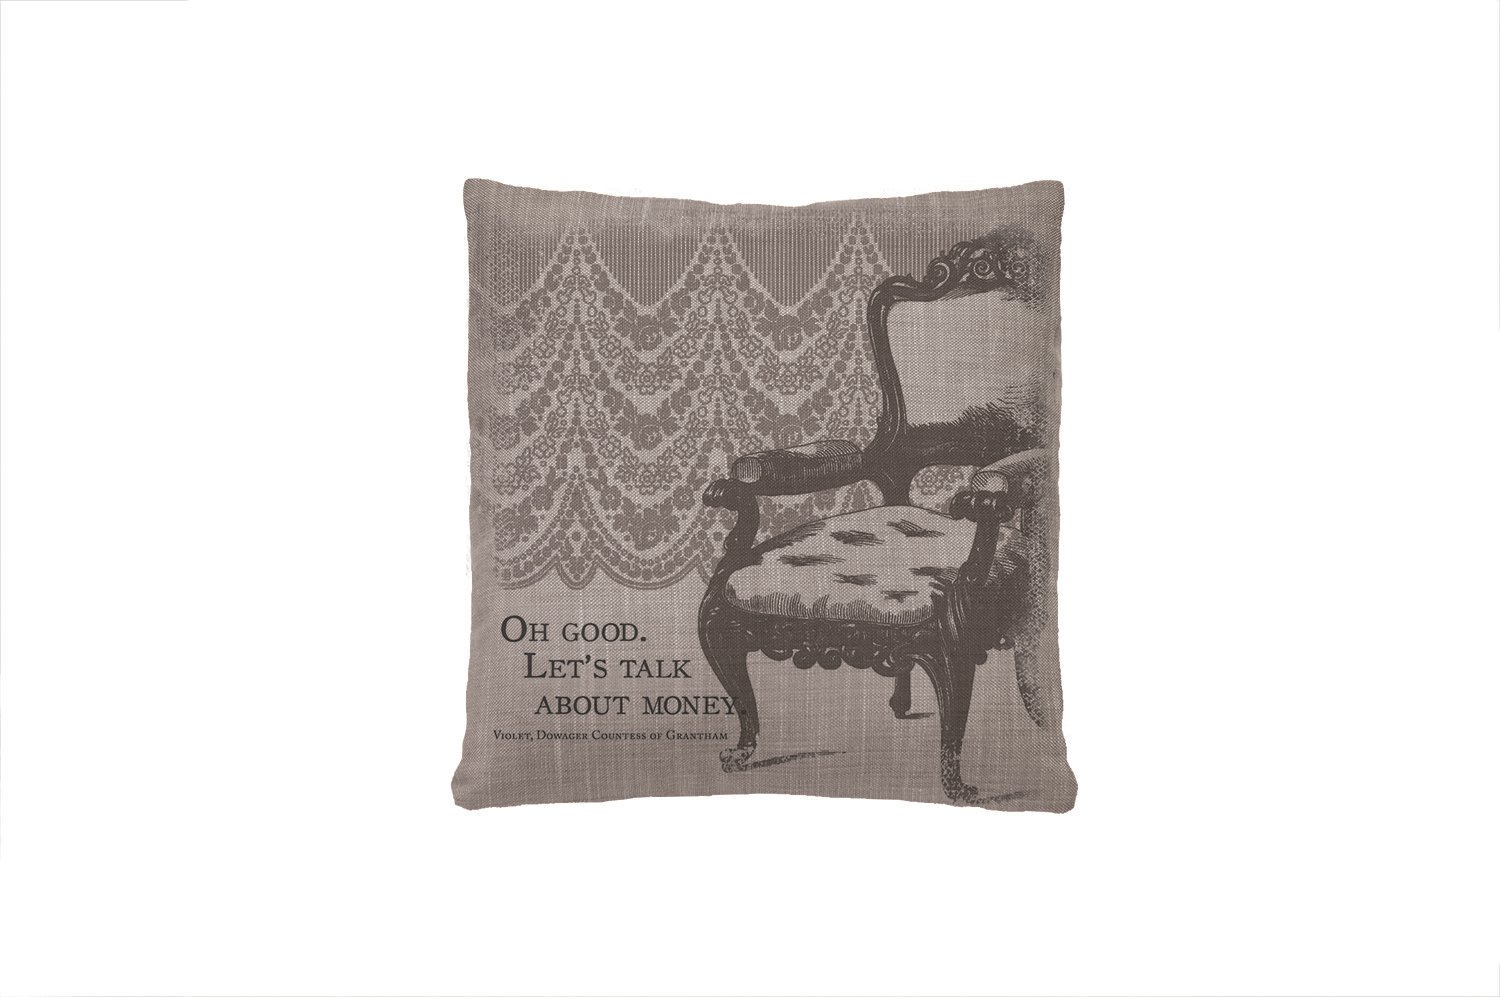 Heritage Lace Downton Abbey Iconic Talk About Money Pillow Cover, 18 by 18-Inch, Gray